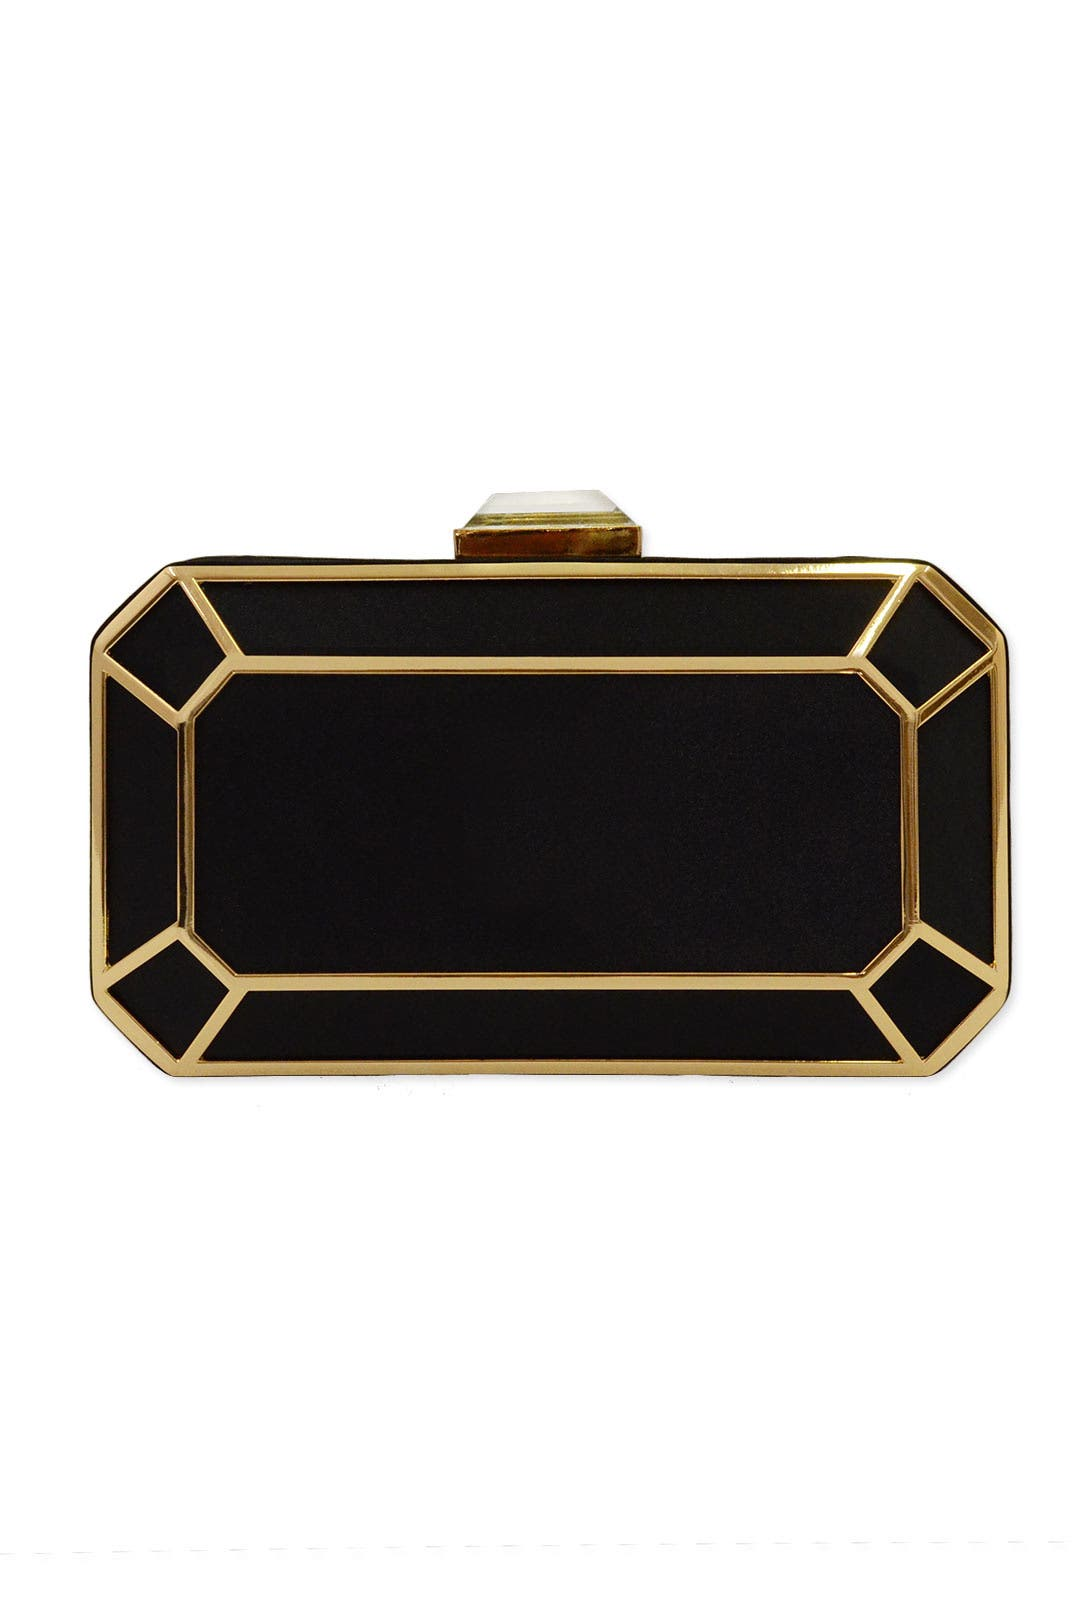 Jet Facet Clutch by Love Moschino Accessories